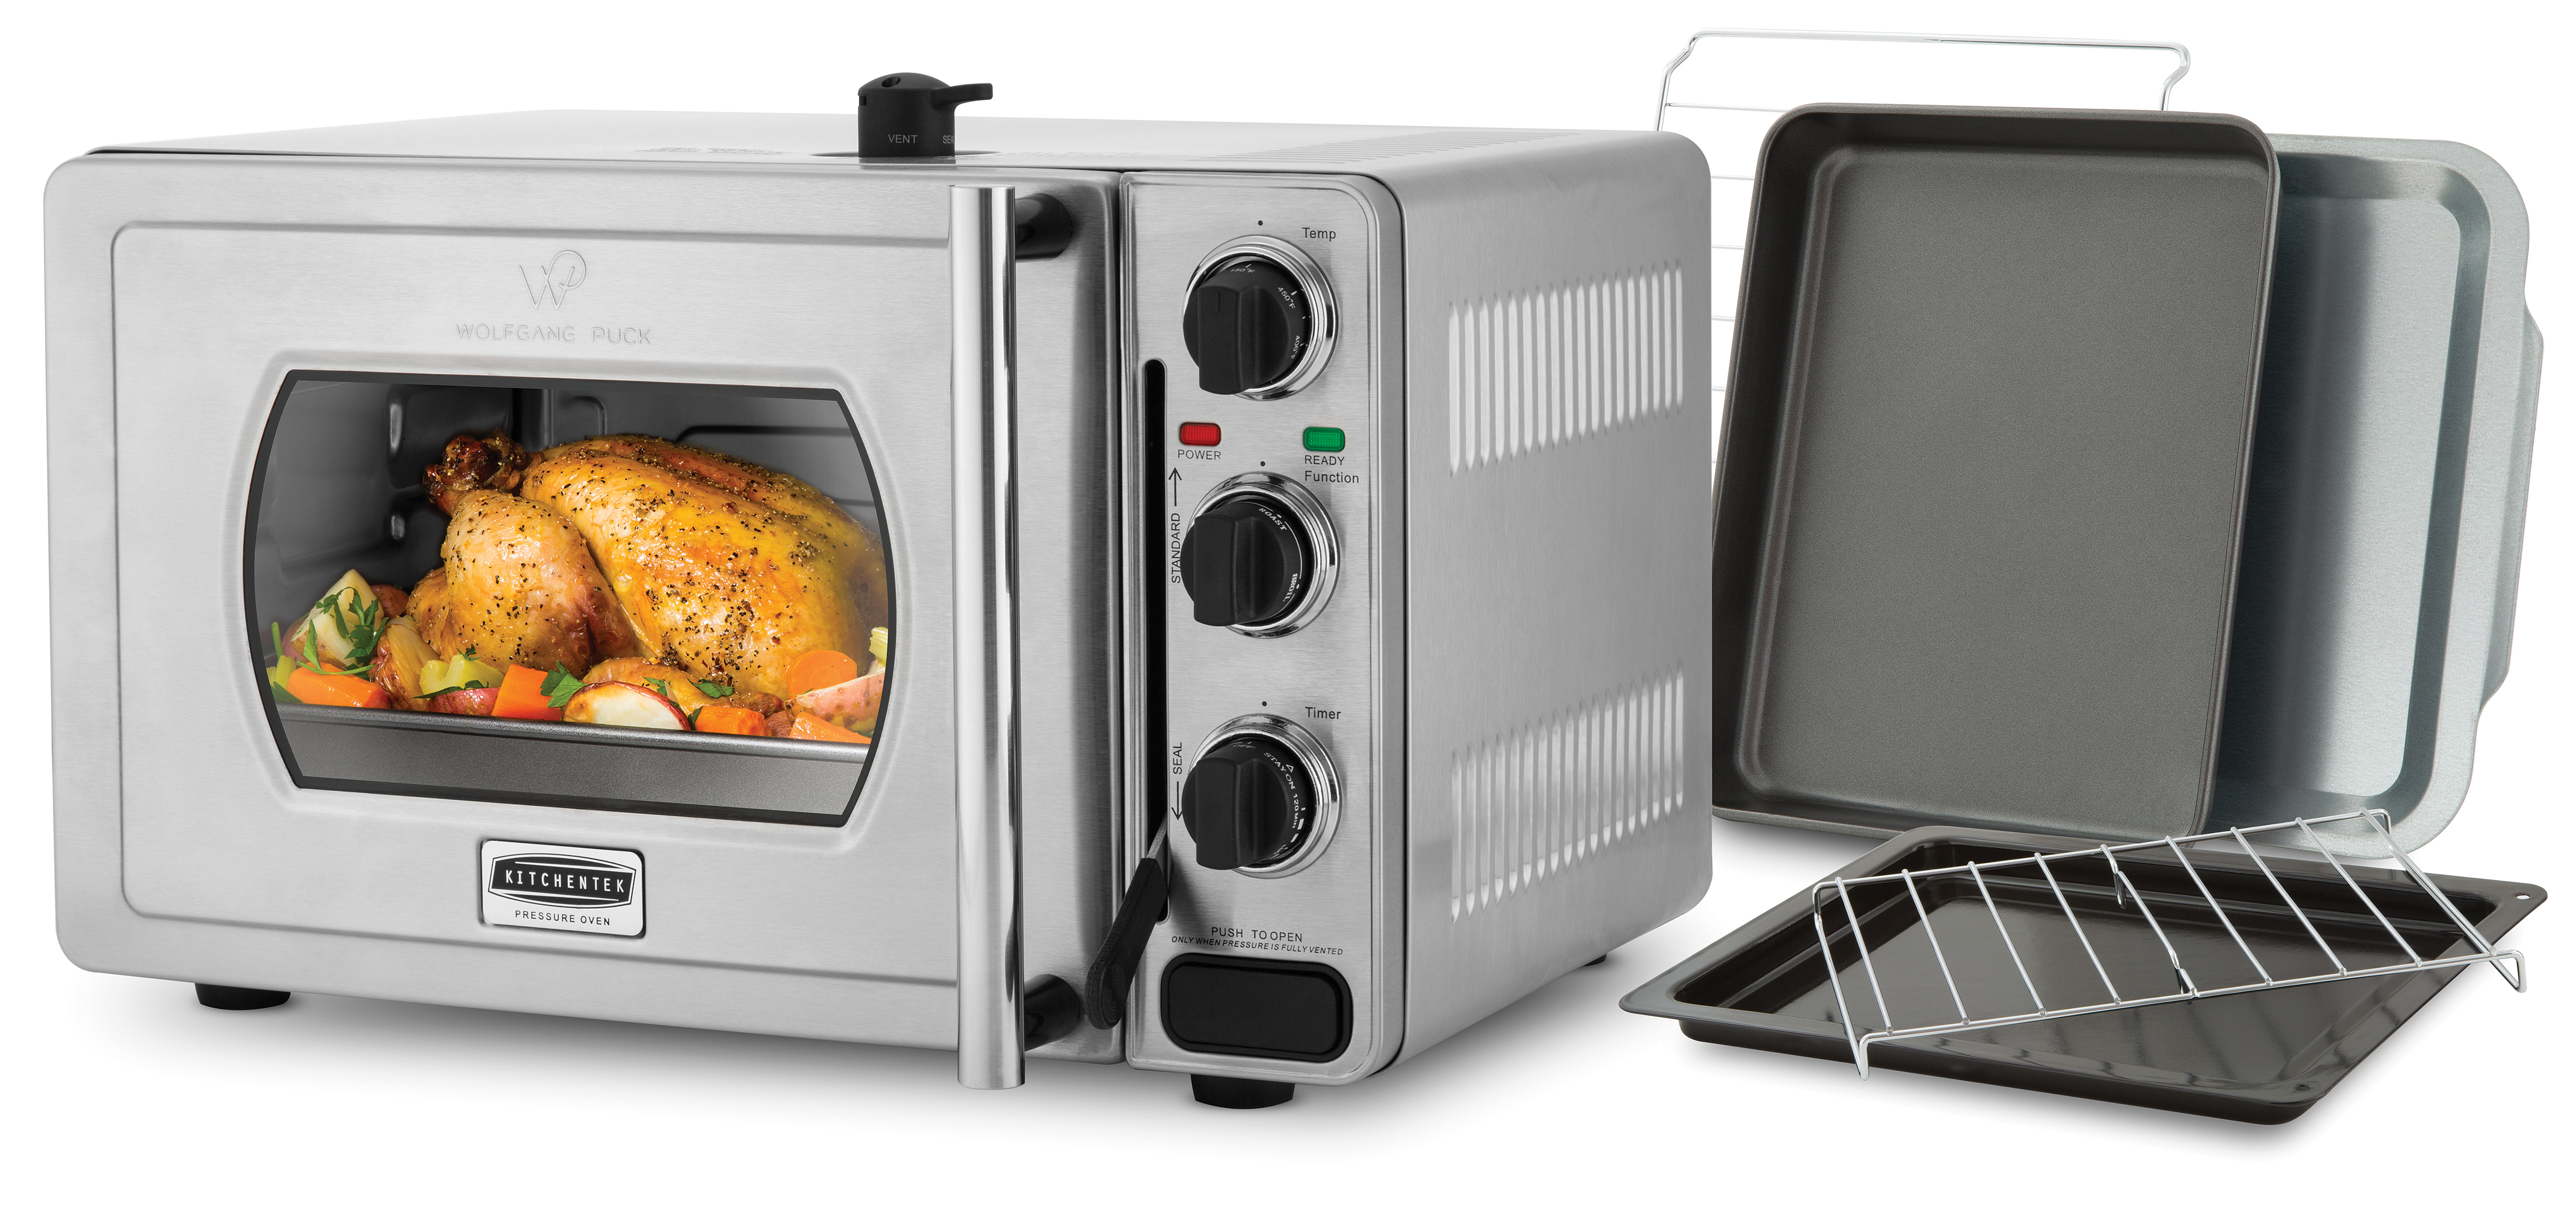 Wolfgang puck pressure oven essential 22 liter stainless for Wolfgang puck pressure oven